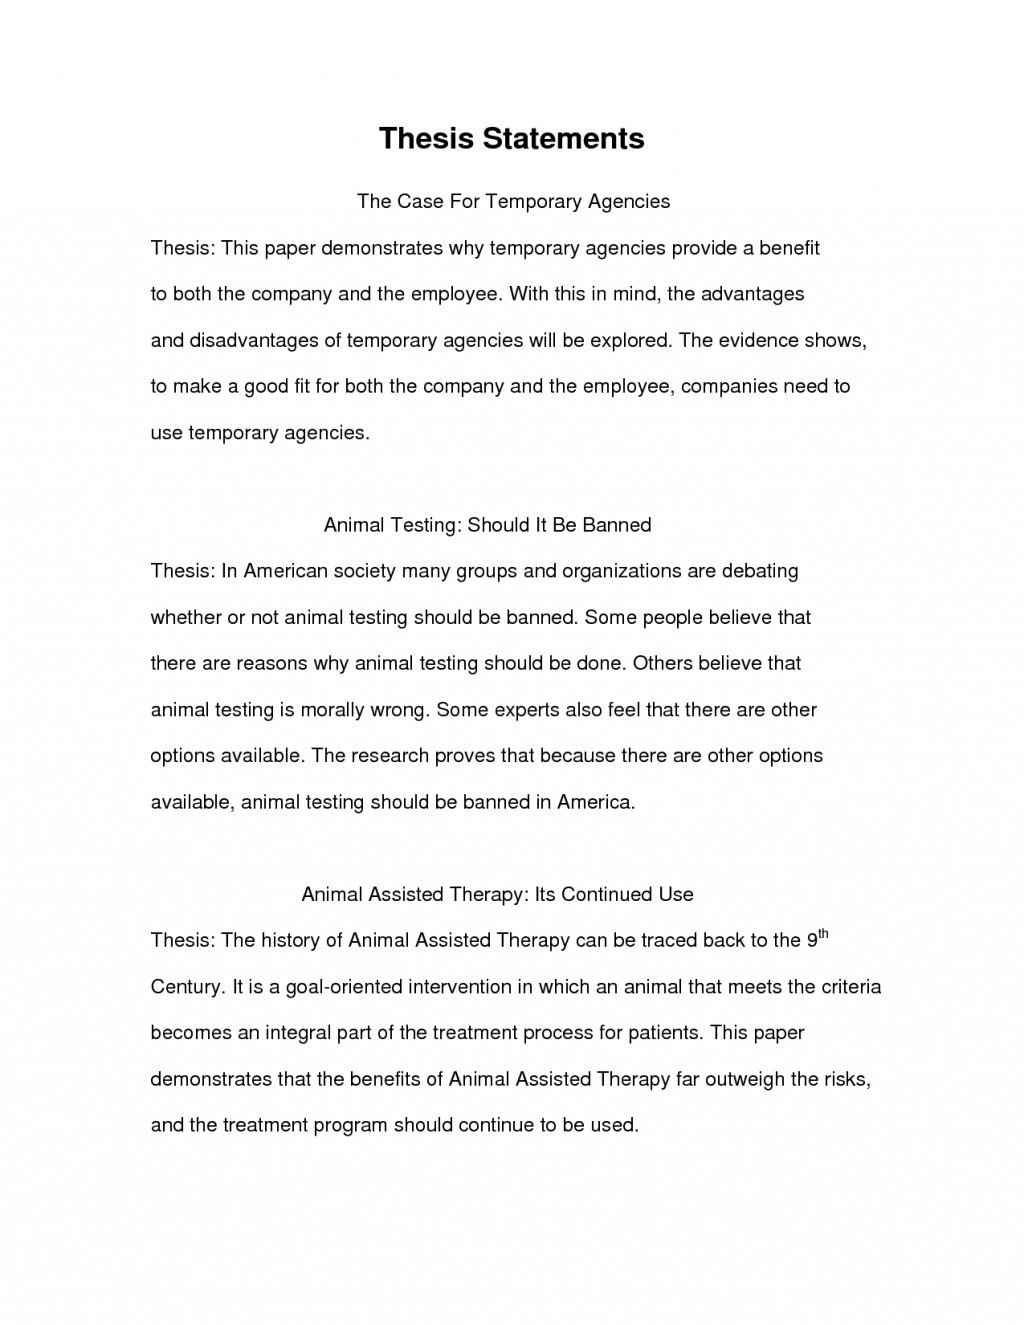 004 Thesis Statement For Research Paper On Abortion Breast Cancer Essay Template Bfnmxz7cfv Examples Of In An How To Unique Write A Pdf Apa Format Large